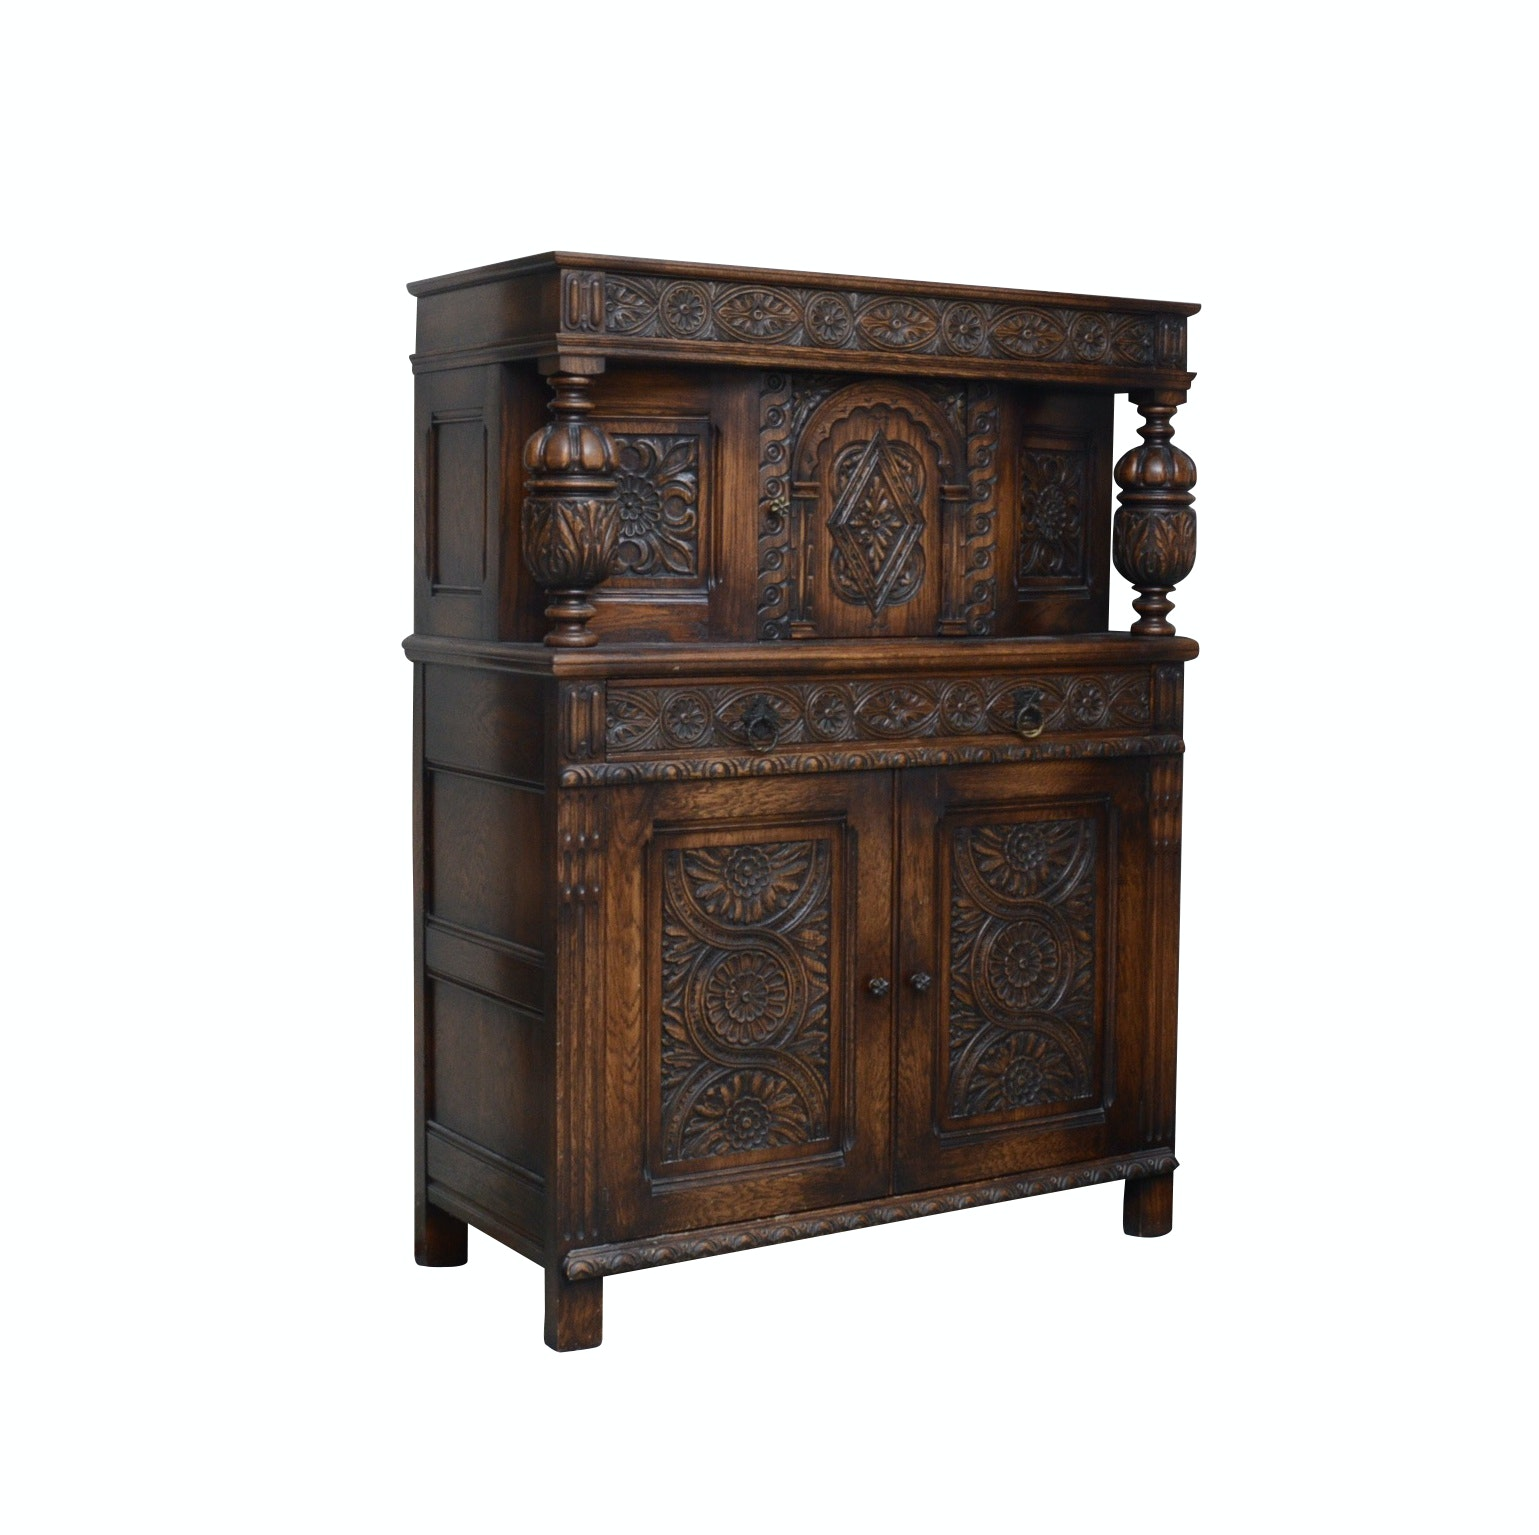 Jacobean Revival Carved Oak Cabinet, 1930s